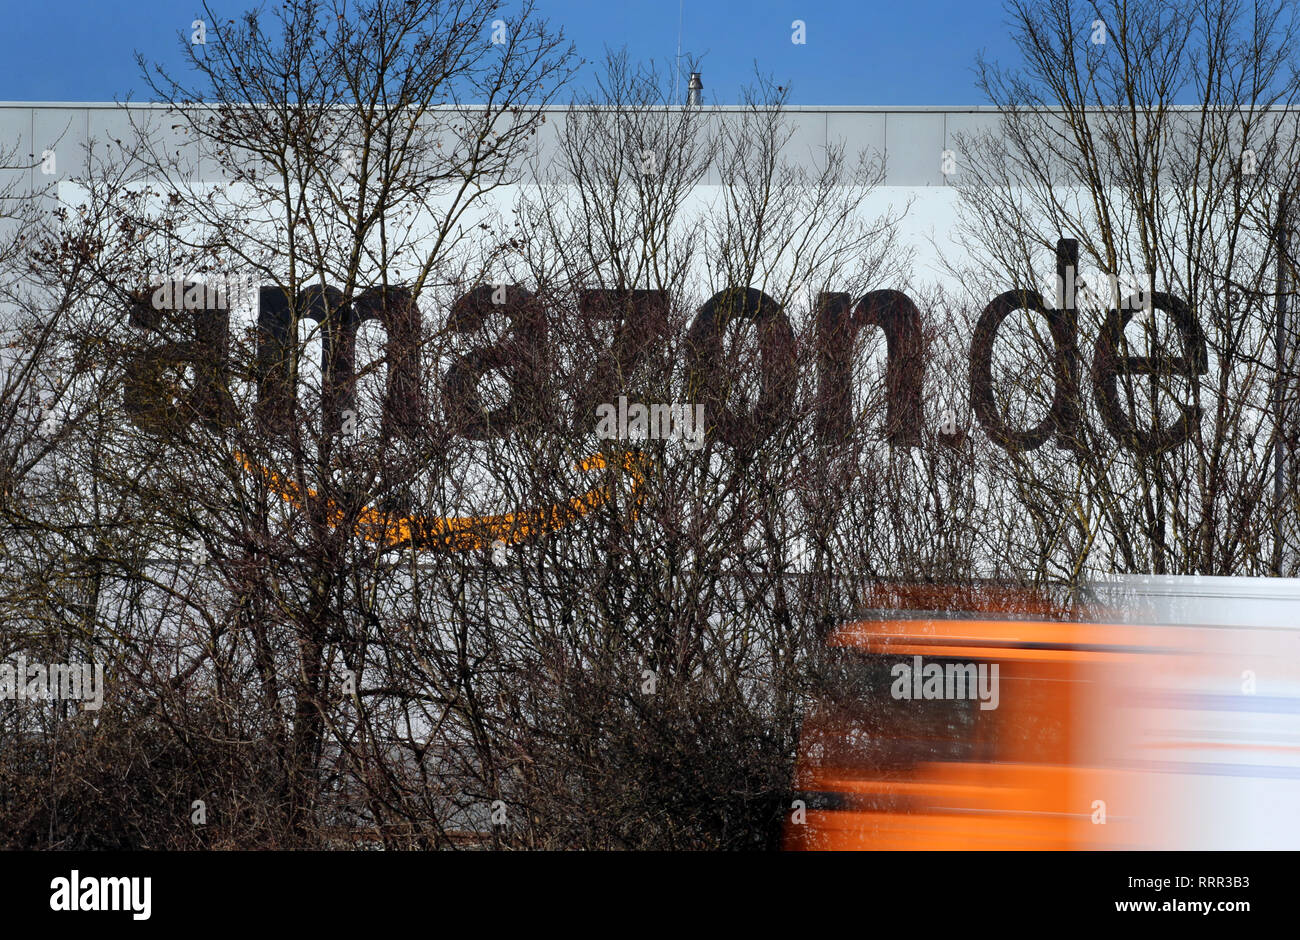 fd596a9f907 A truck drives in front of the logo of the Internet dealer Amazon